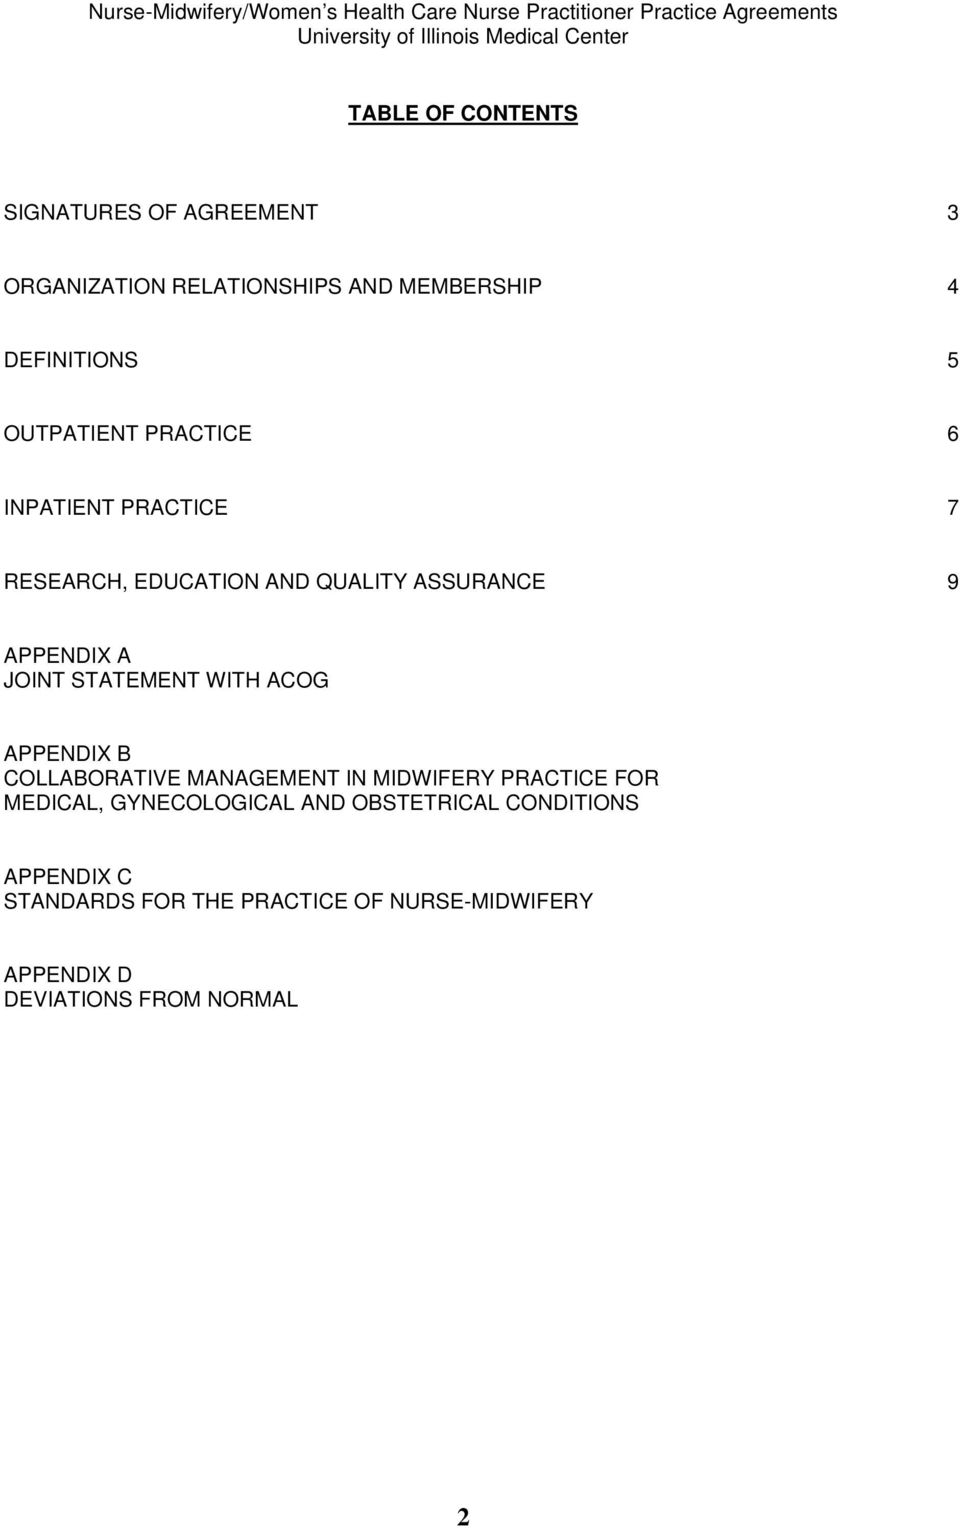 STATEMENT WITH ACOG APPENDIX B COLLABORATIVE MANAGEMENT IN MIDWIFERY PRACTICE FOR MEDICAL, GYNECOLOGICAL